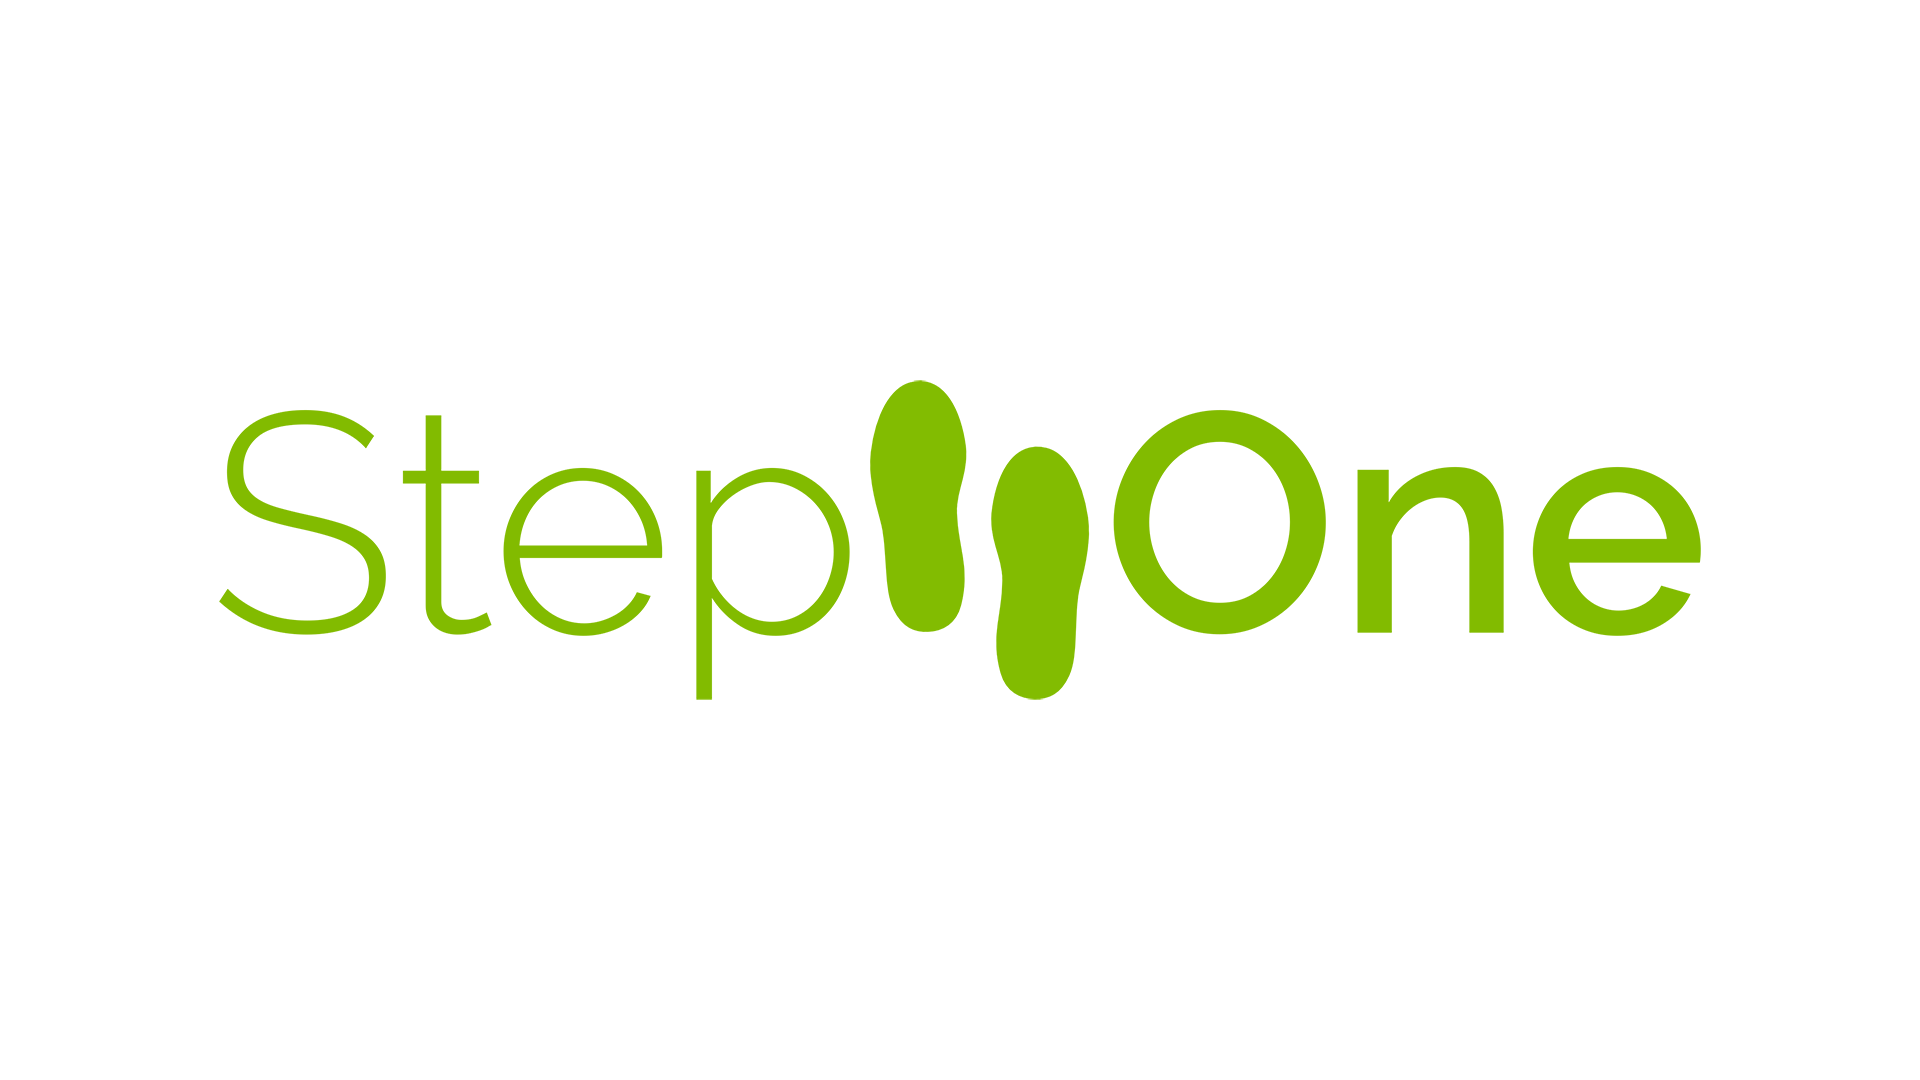 Stepone.logowithname